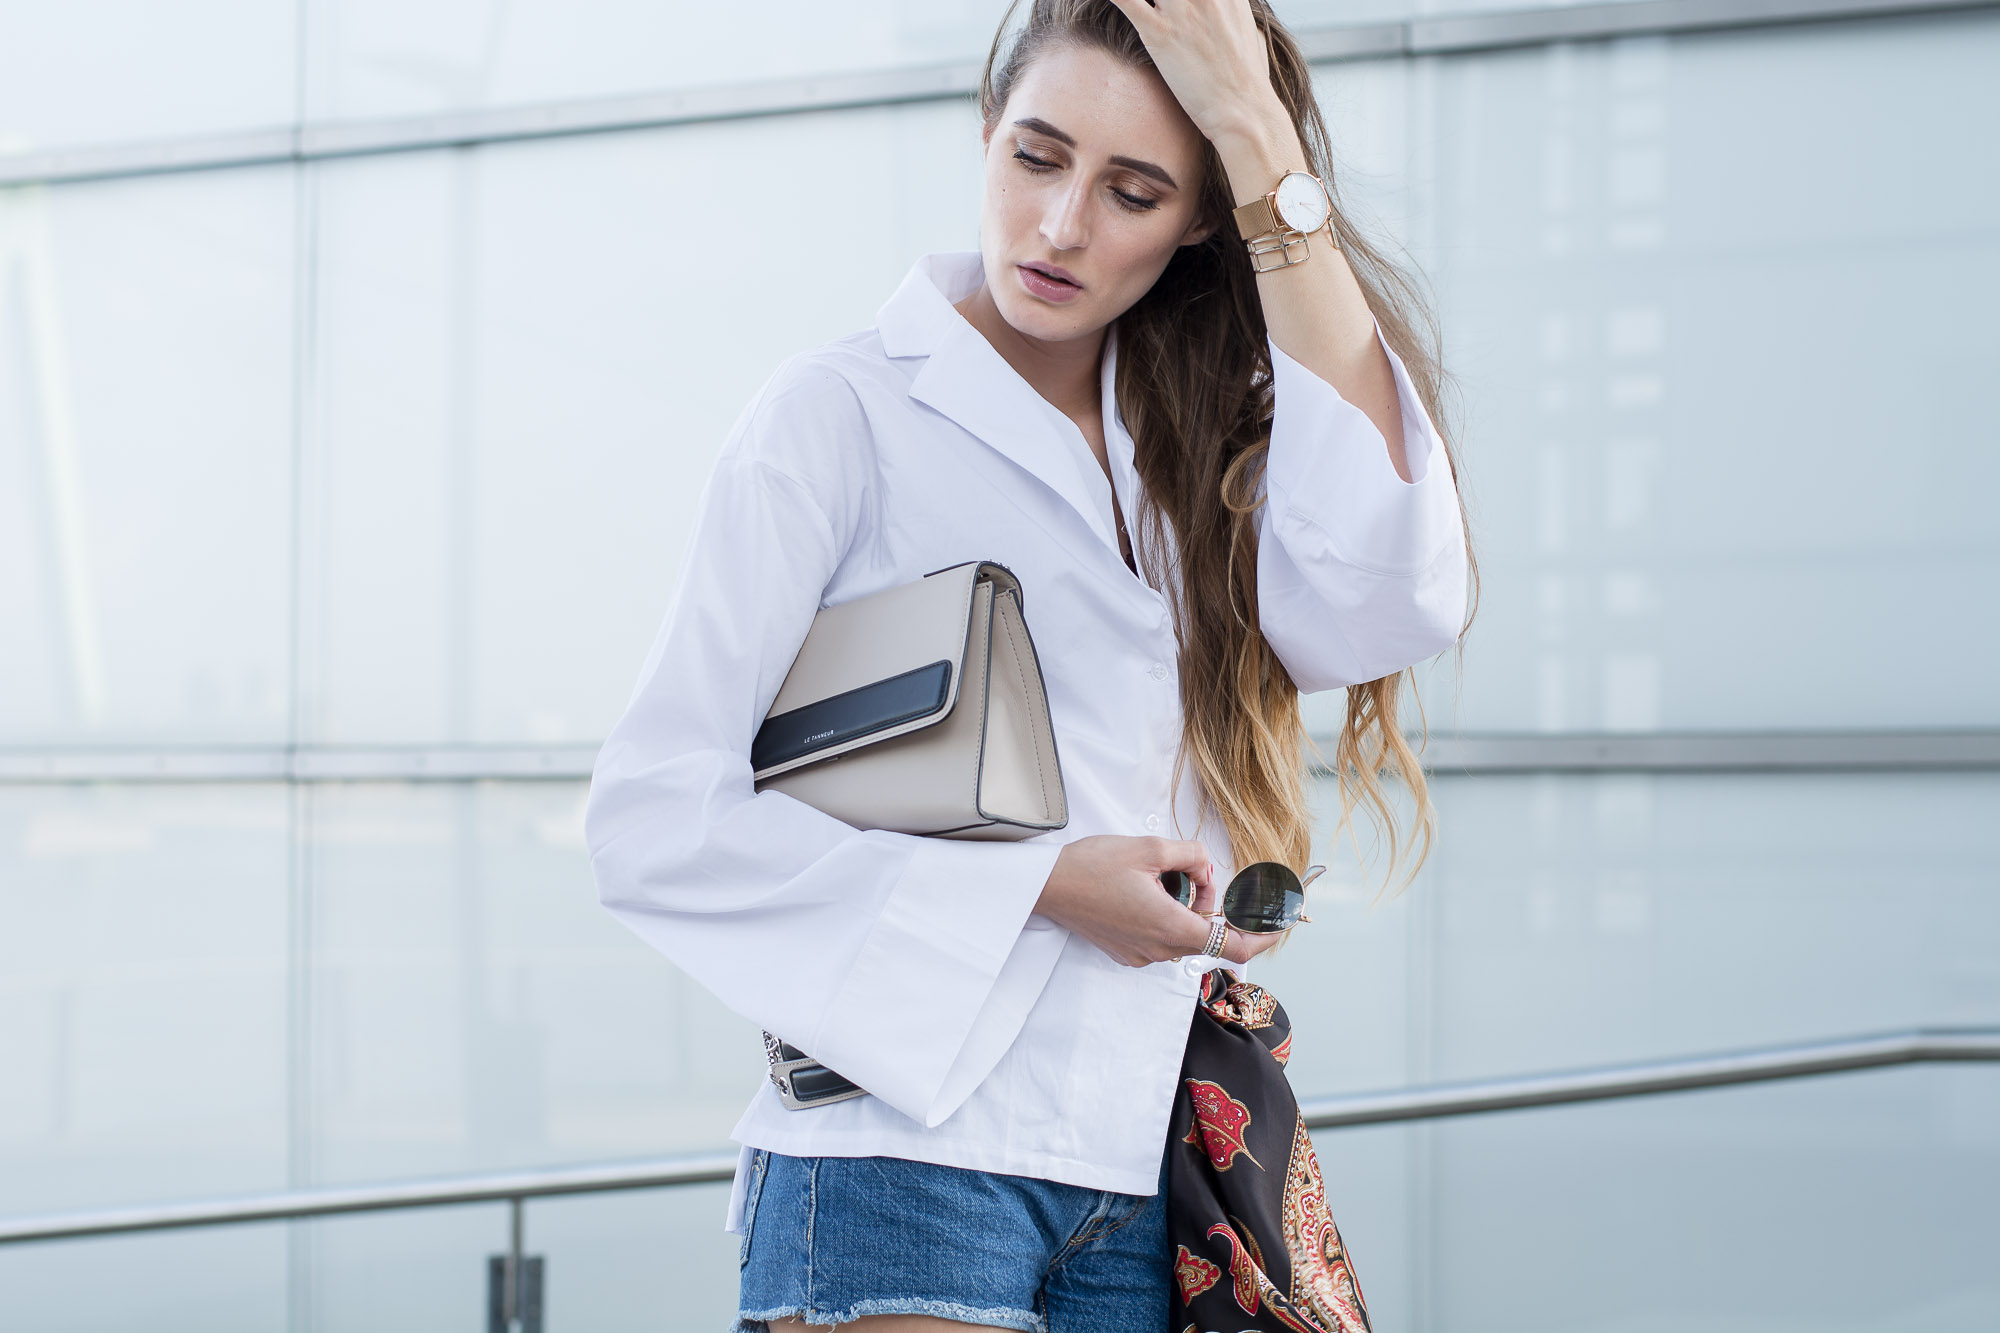 Buffalo Ankle Boots & Wide Sleeved Blouse| Lisa Fiege